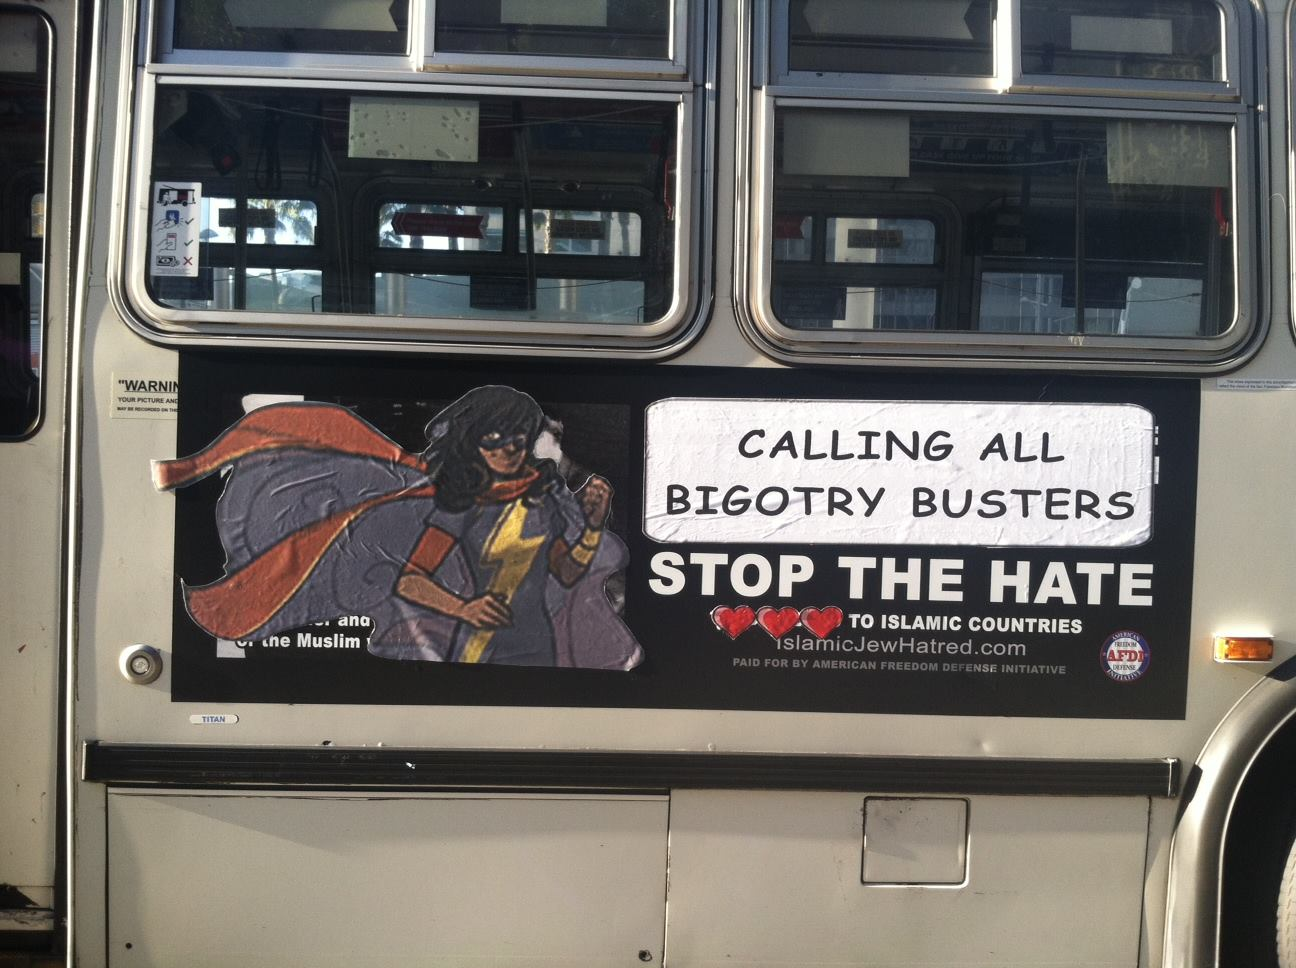 """Ms Marvel with """"calling all bigotry busters"""" text"""